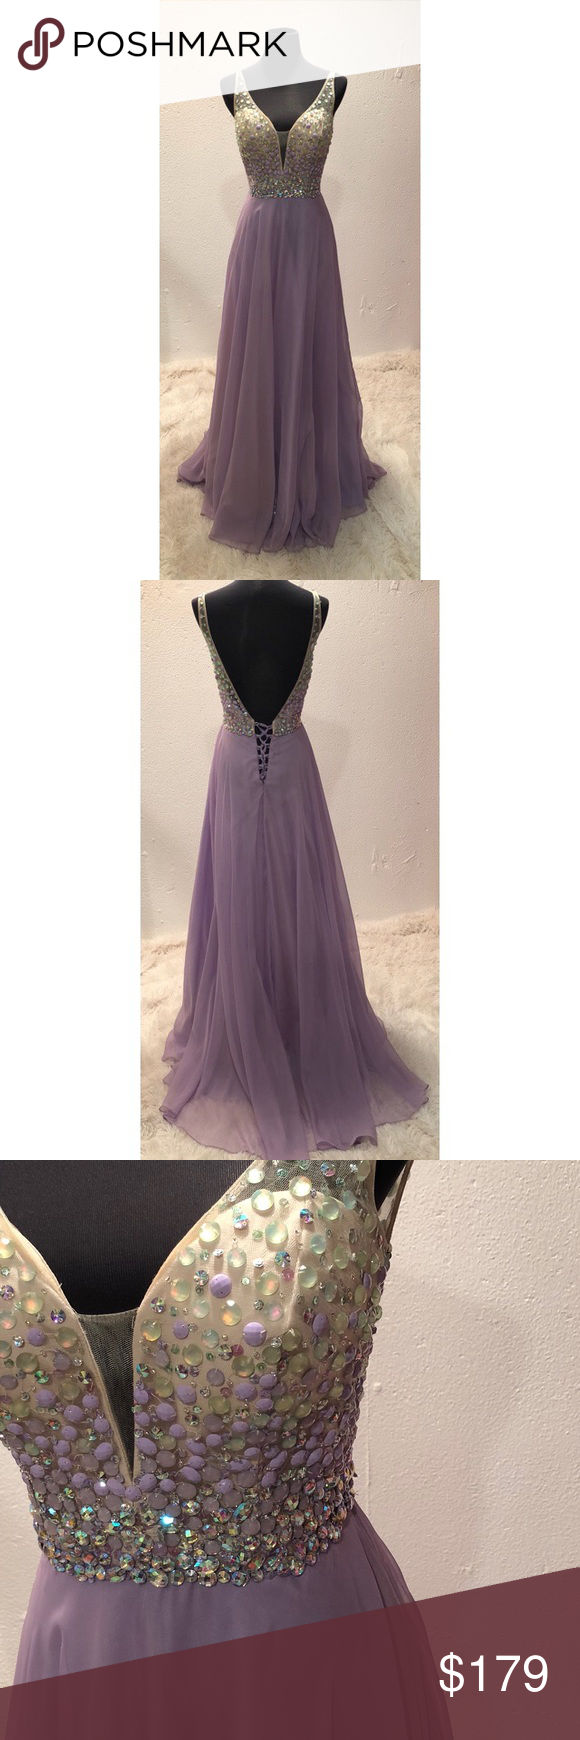 🔥hot deal🔥 lilac evening gown with beaded bodice | Pinterest